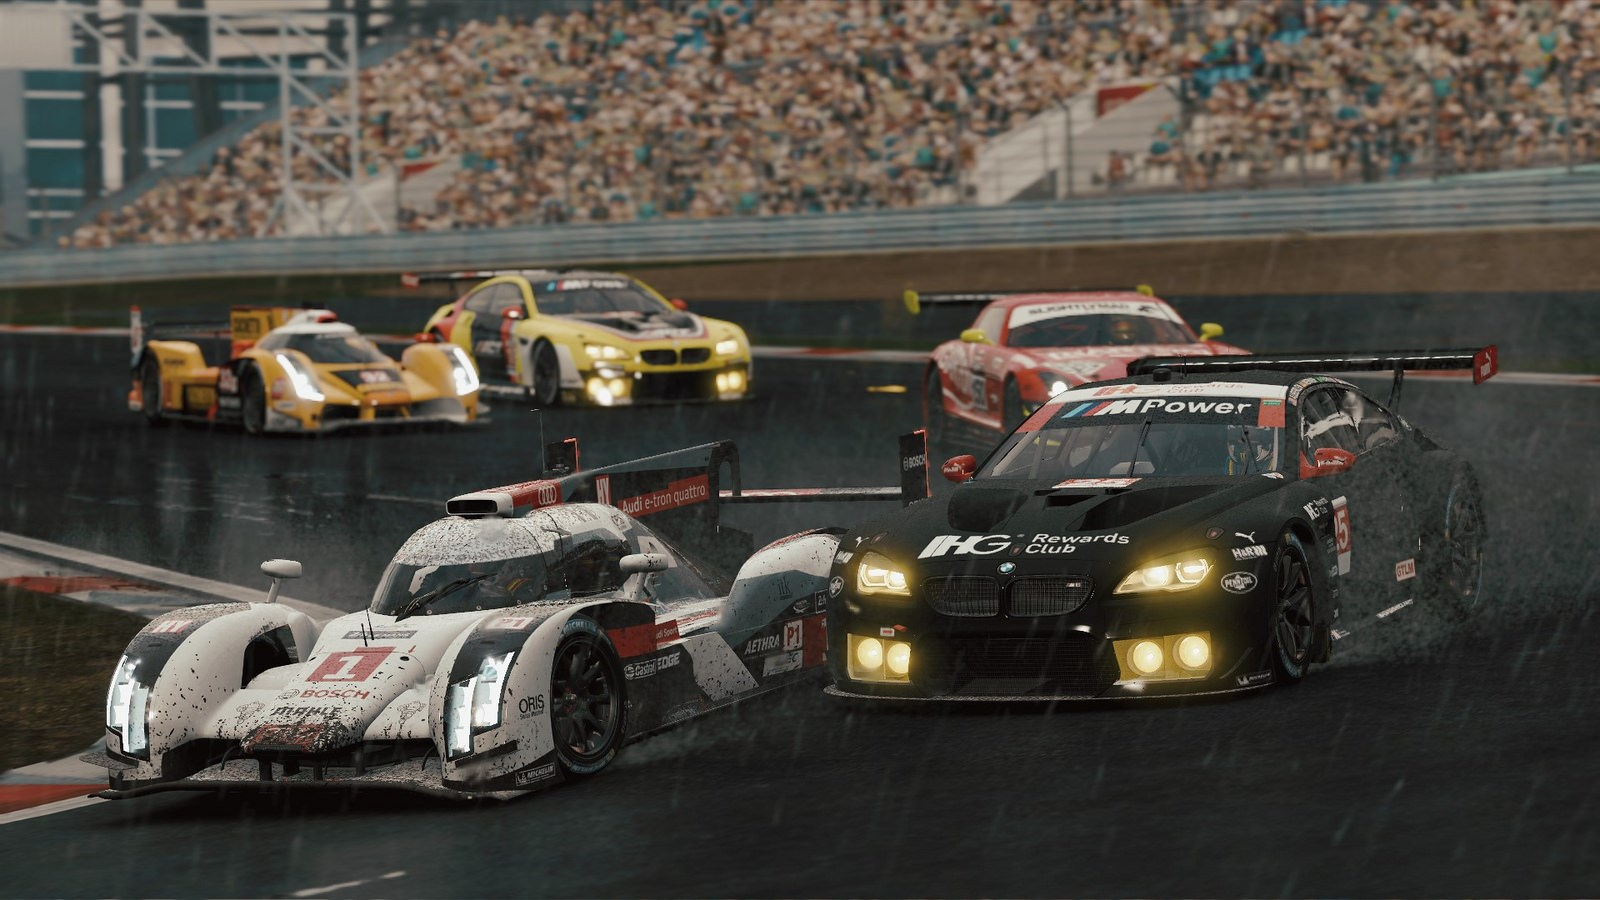 Best racing games 2019 on PS4 and Xbox One: 6 driving sims you